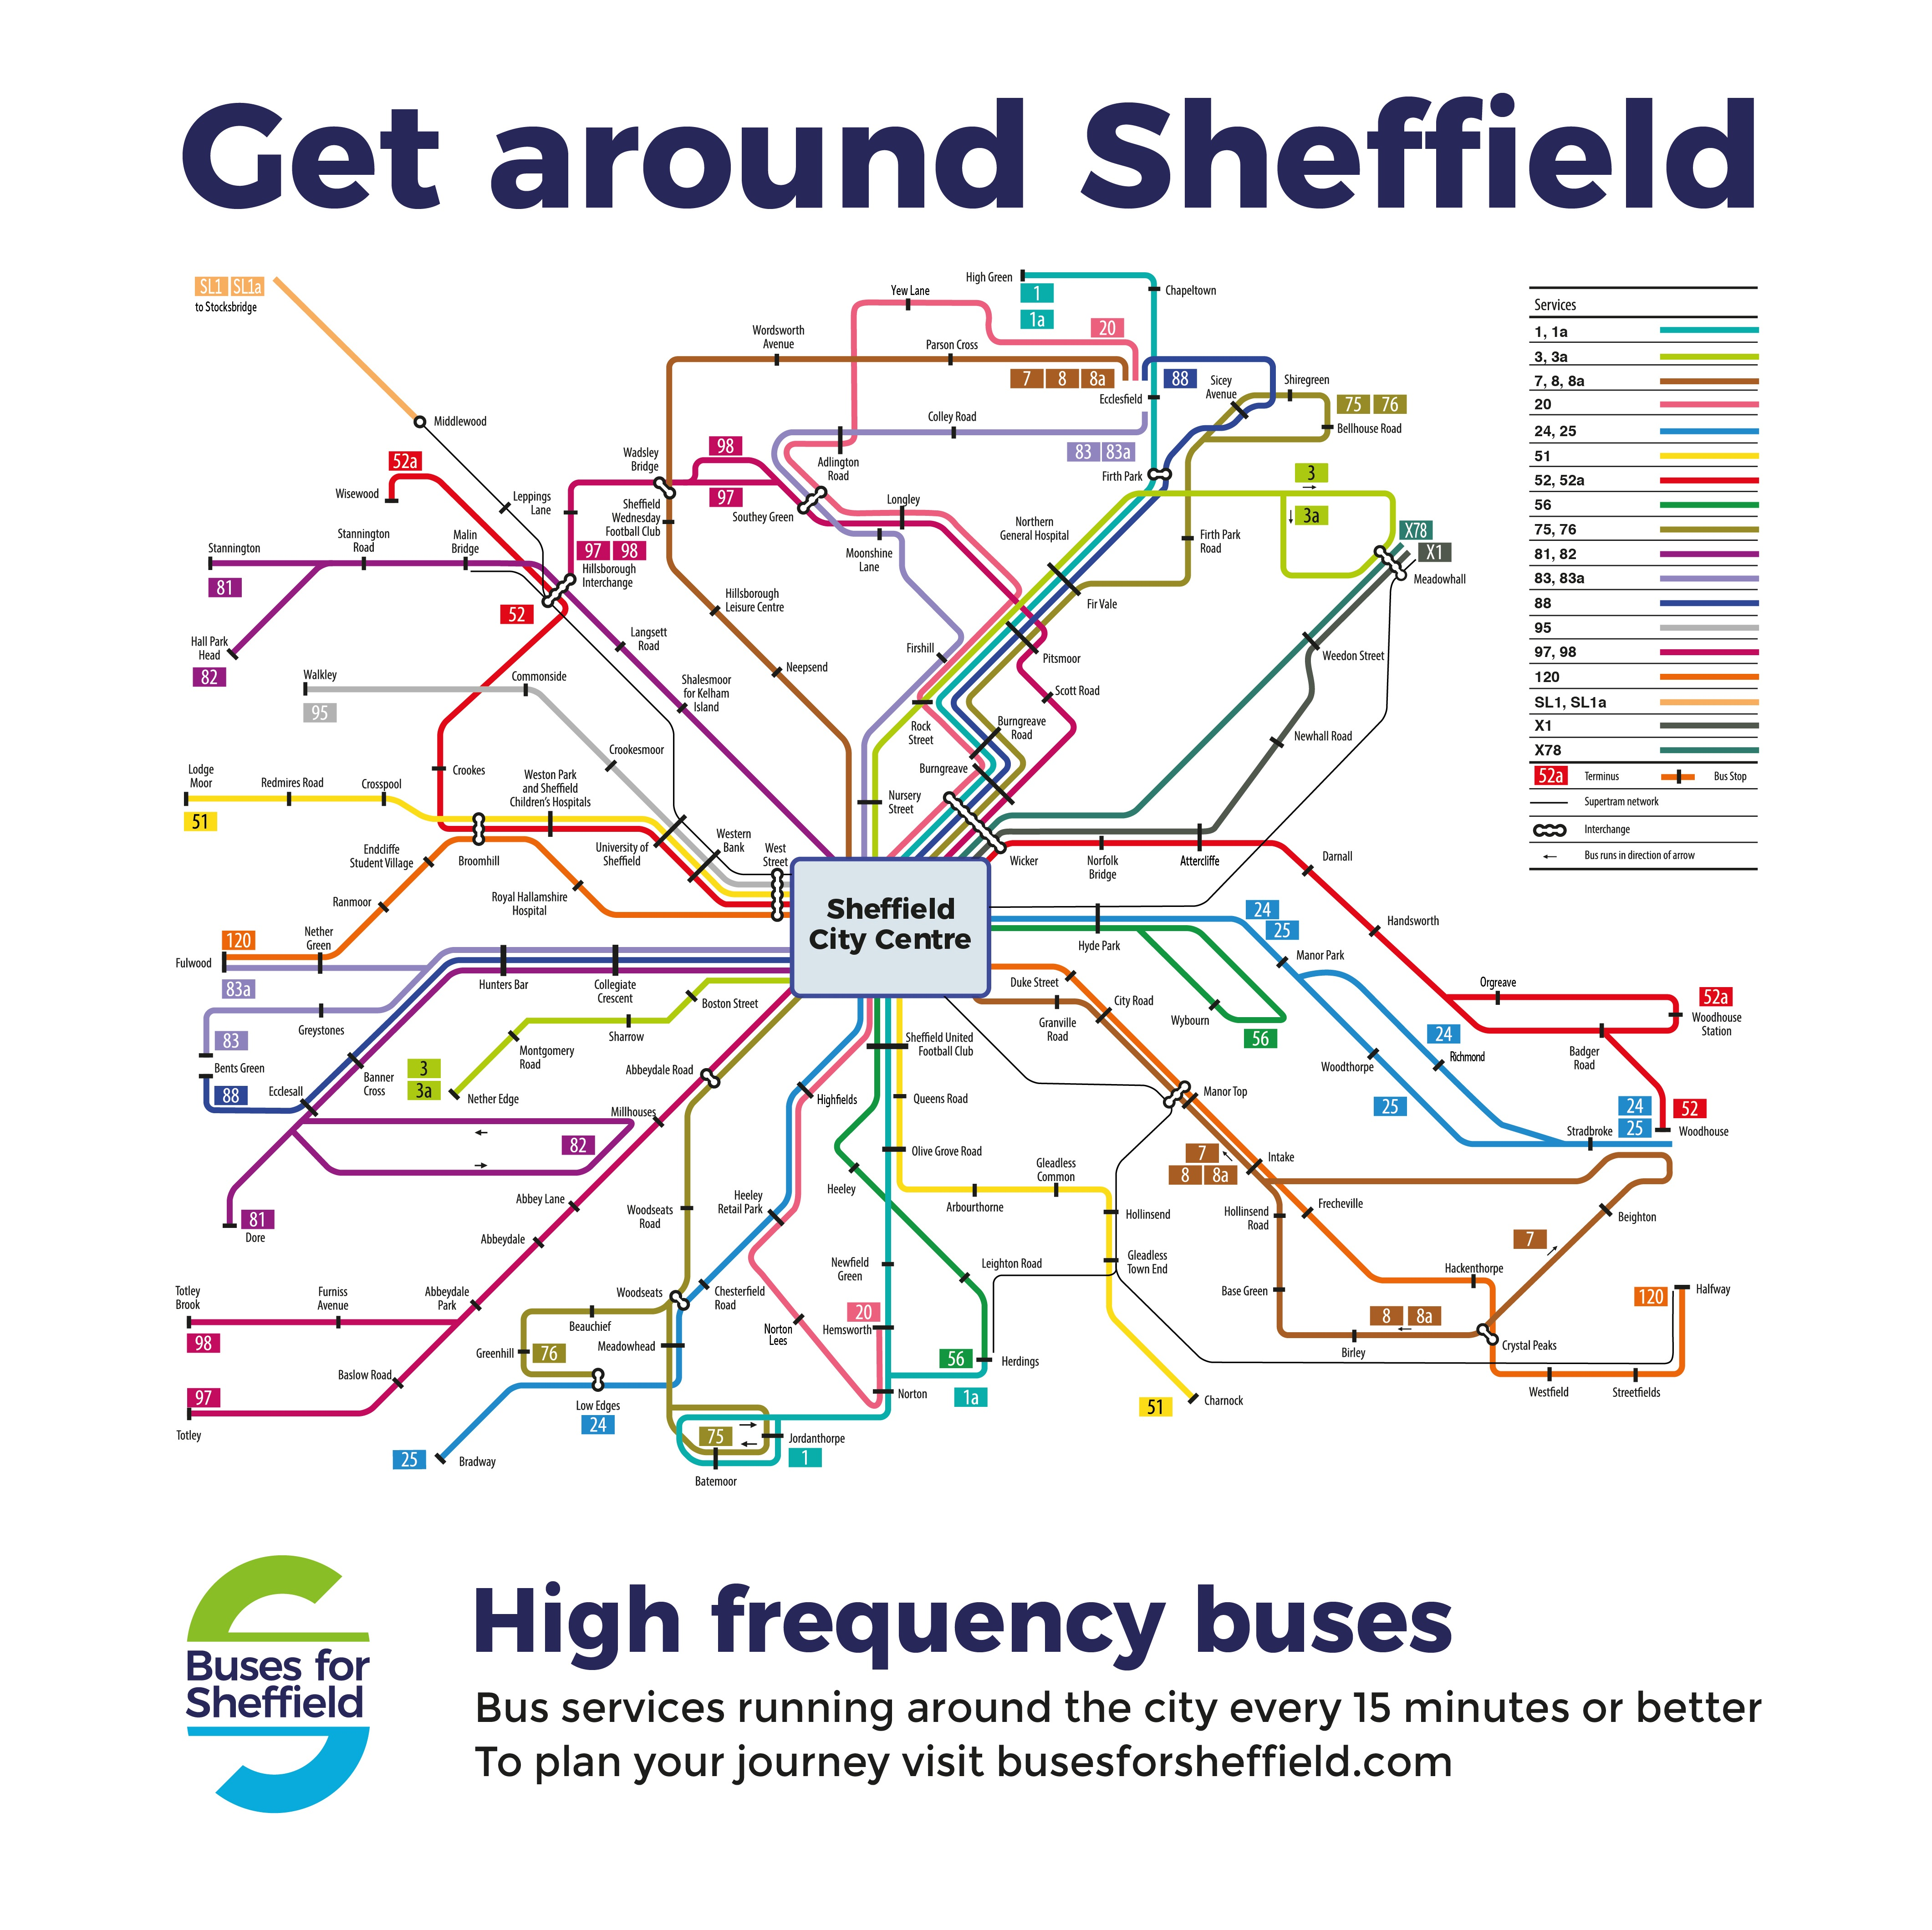 Buses for Sheffield high frequency bus map